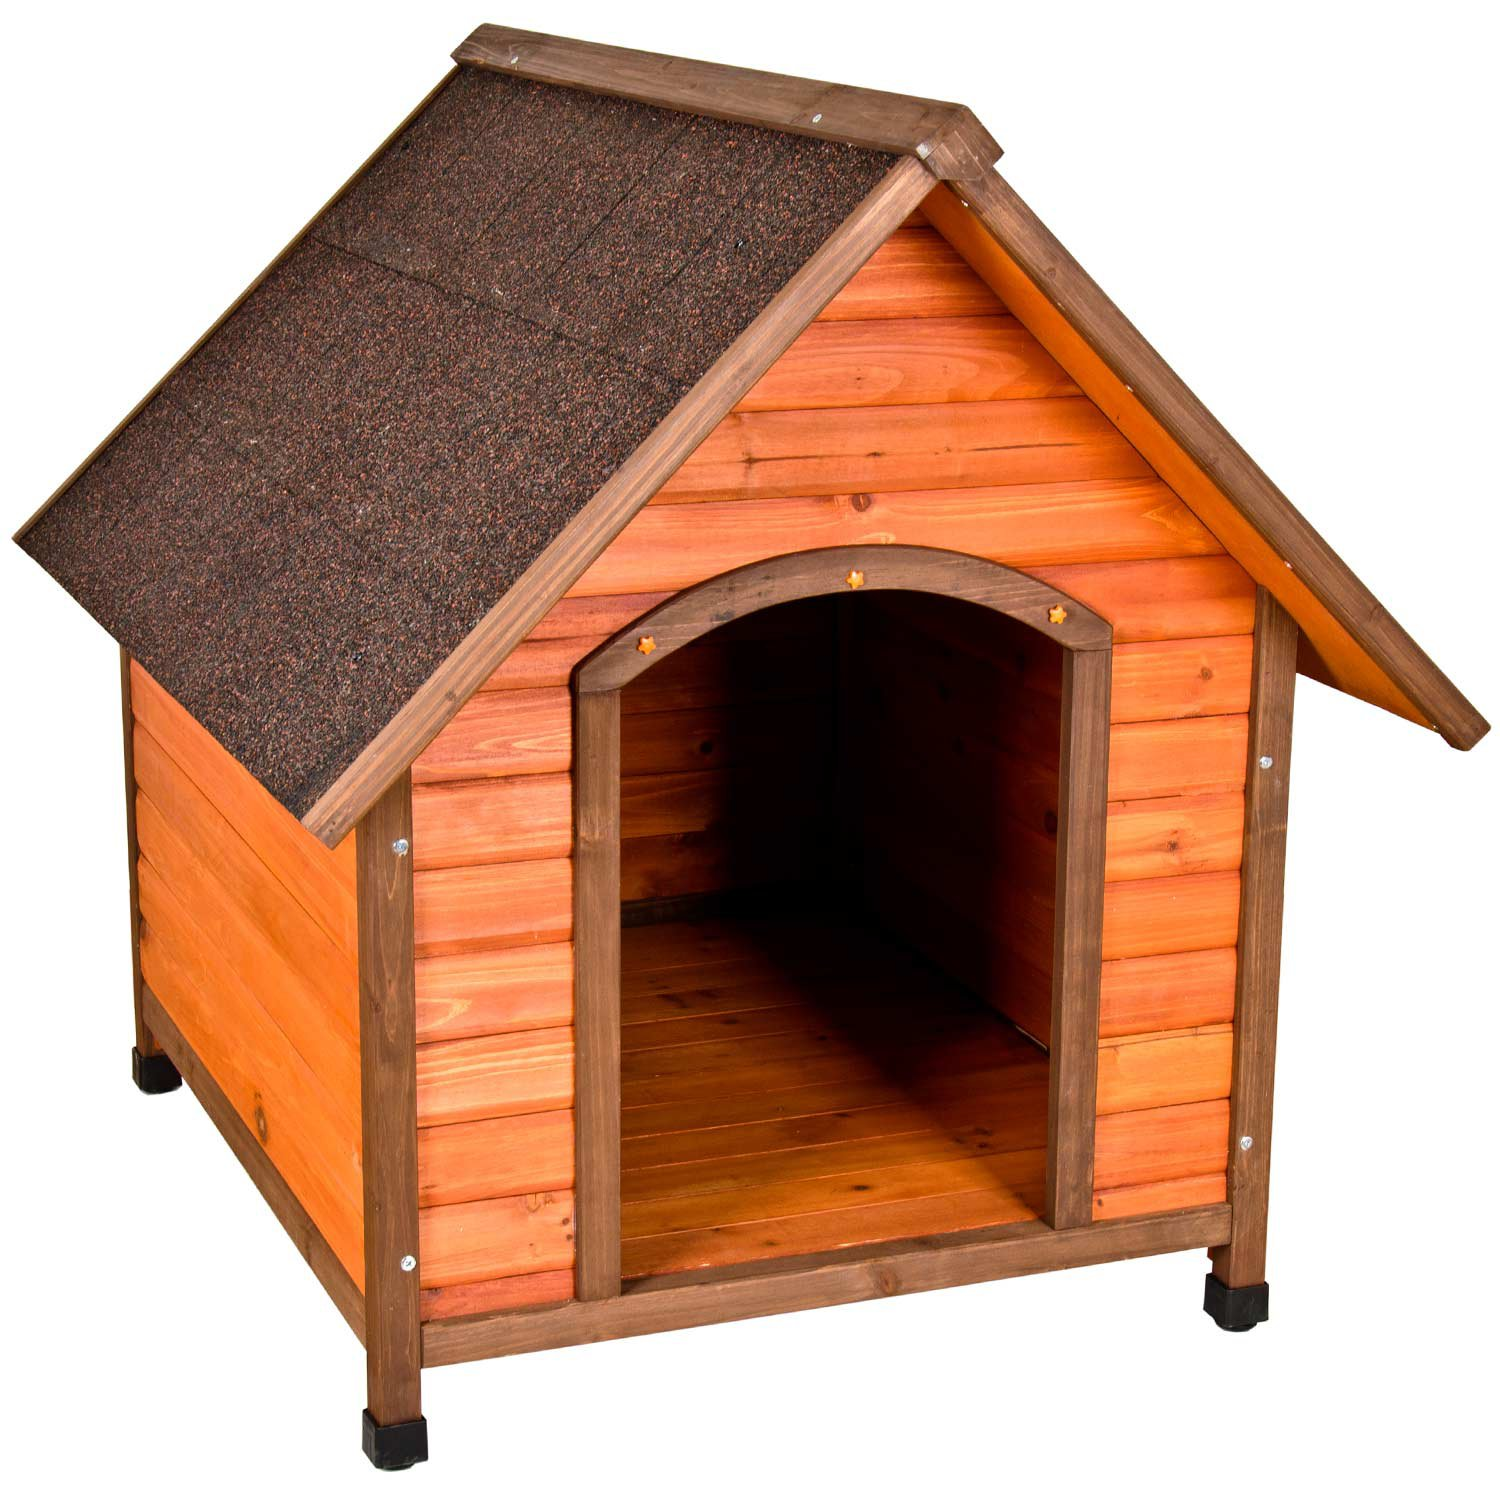 ware premium plus a frame dog houses petco ware premium plus a frame dog houses